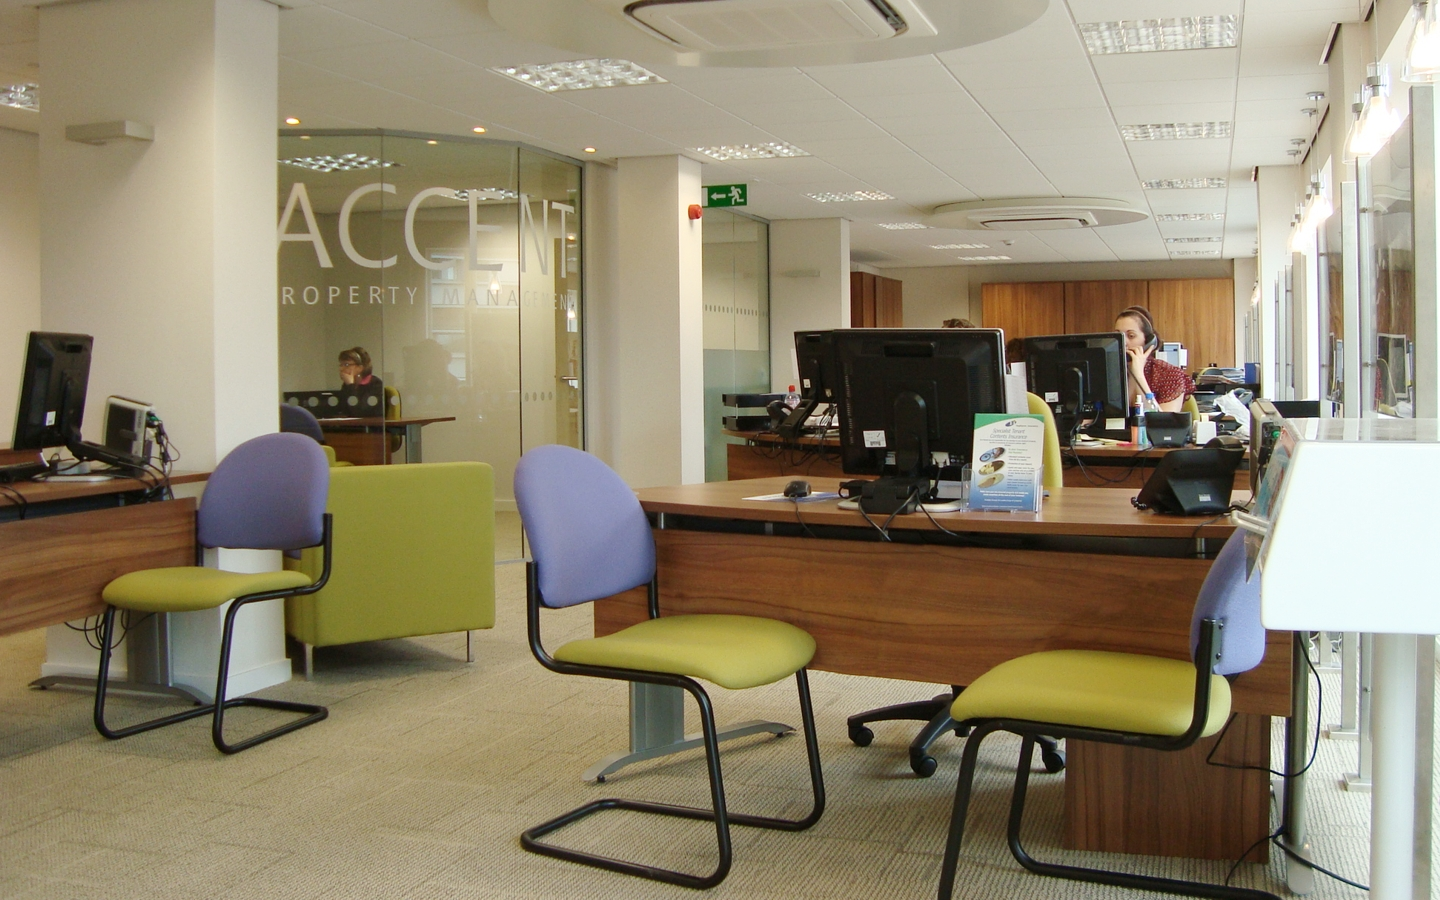 Accent Property Management, Cambridge Case Study